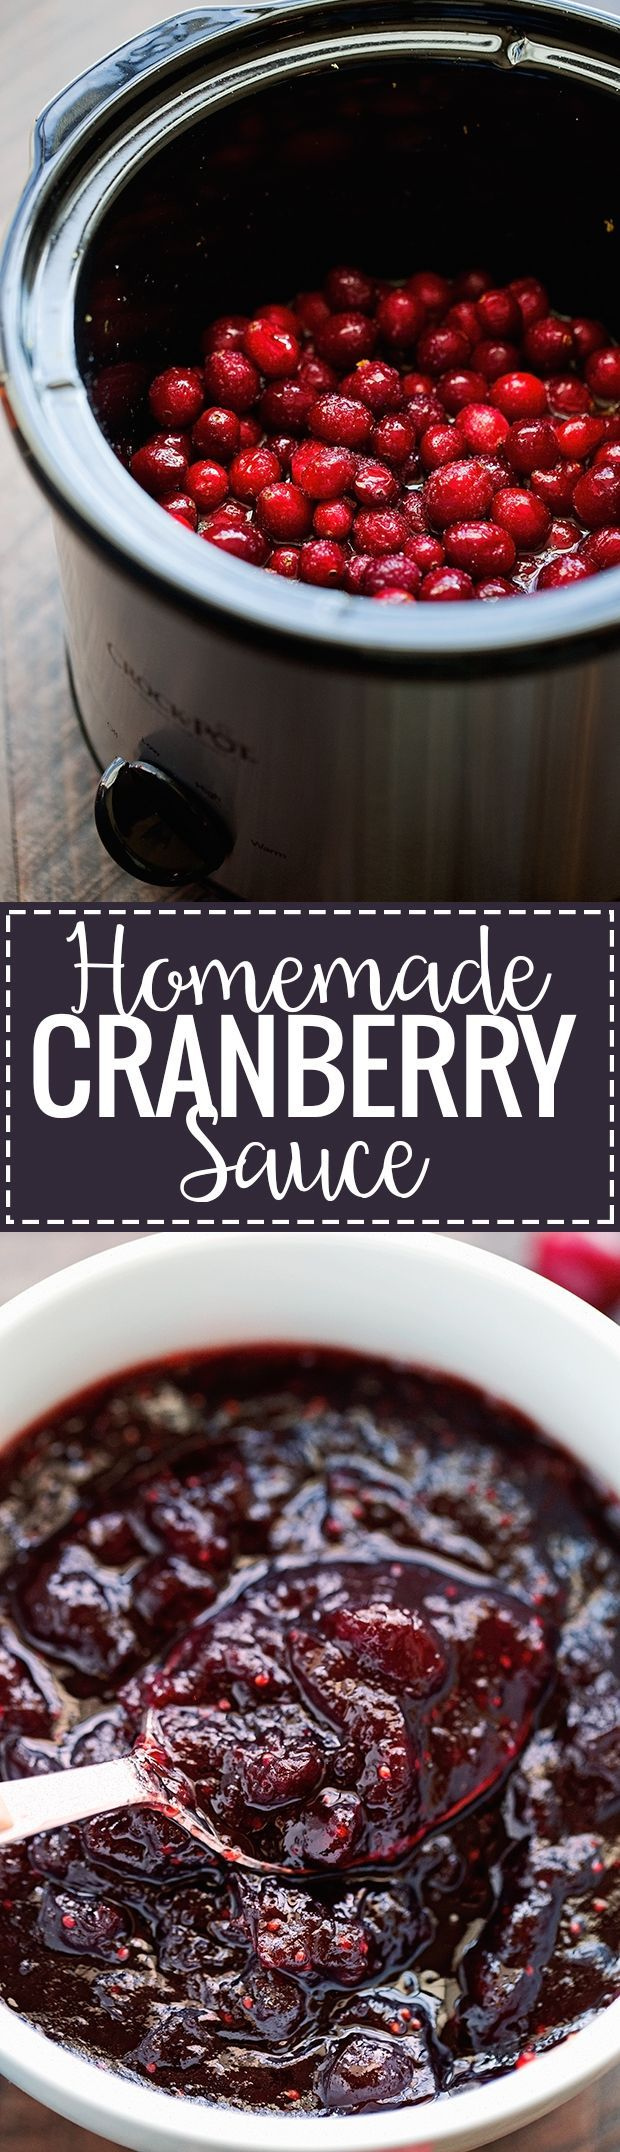 Homemade Cranberry Sauce (Slow Cooker) - An easy recipe that cooks itself in the slow cooker and can be made ahead!